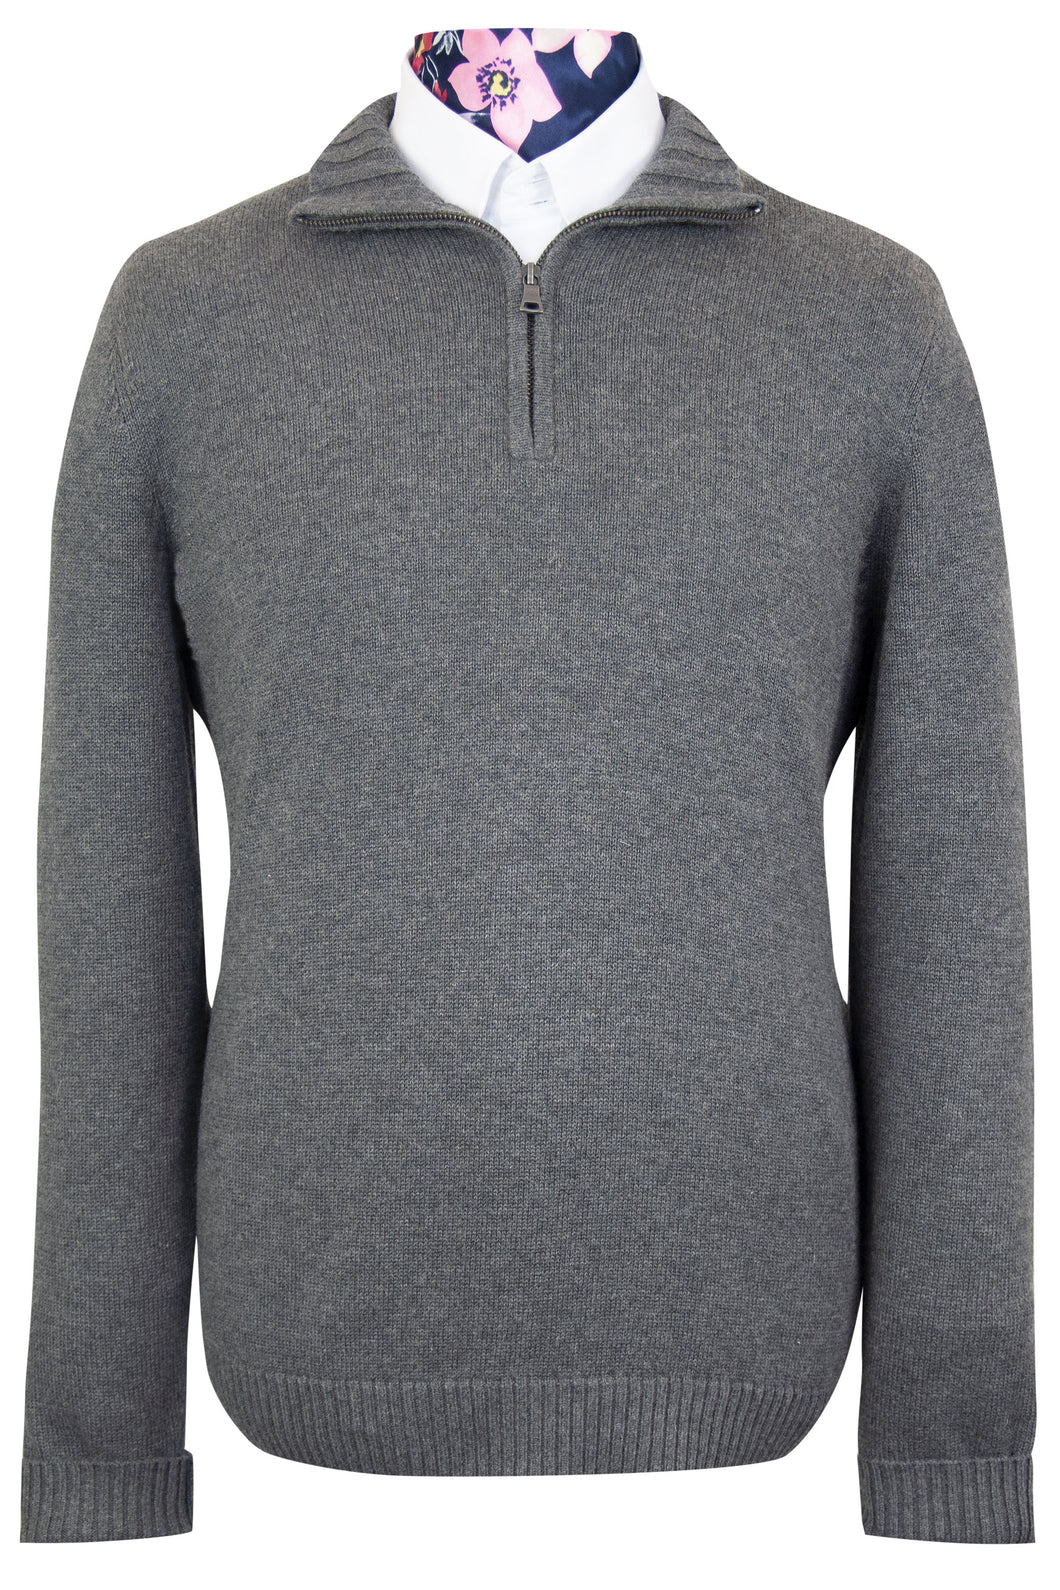 Grey Half Zip WH Knitted Jumper front